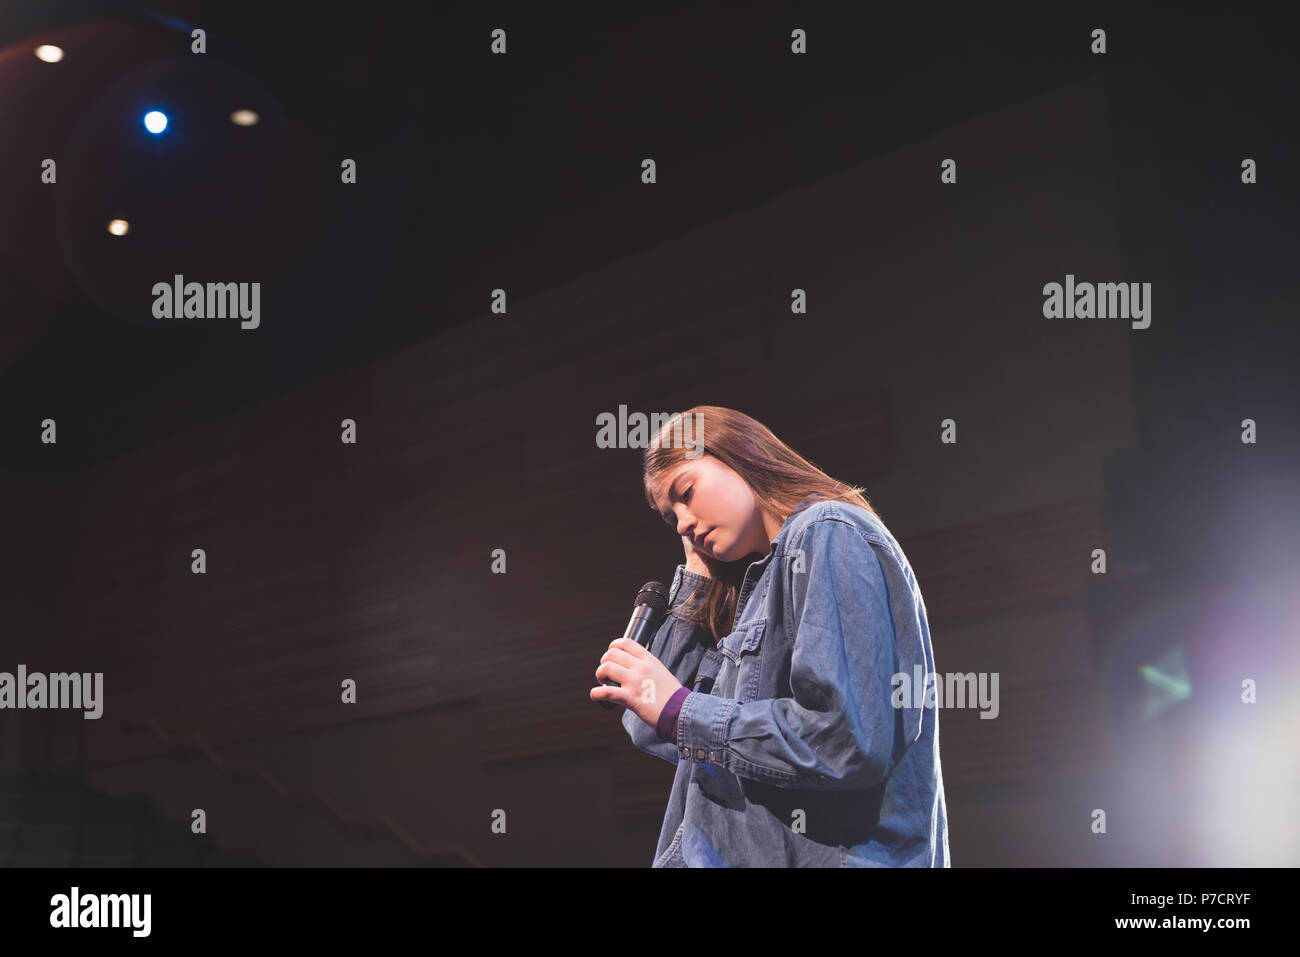 Female singer performing on stage - Stock Image